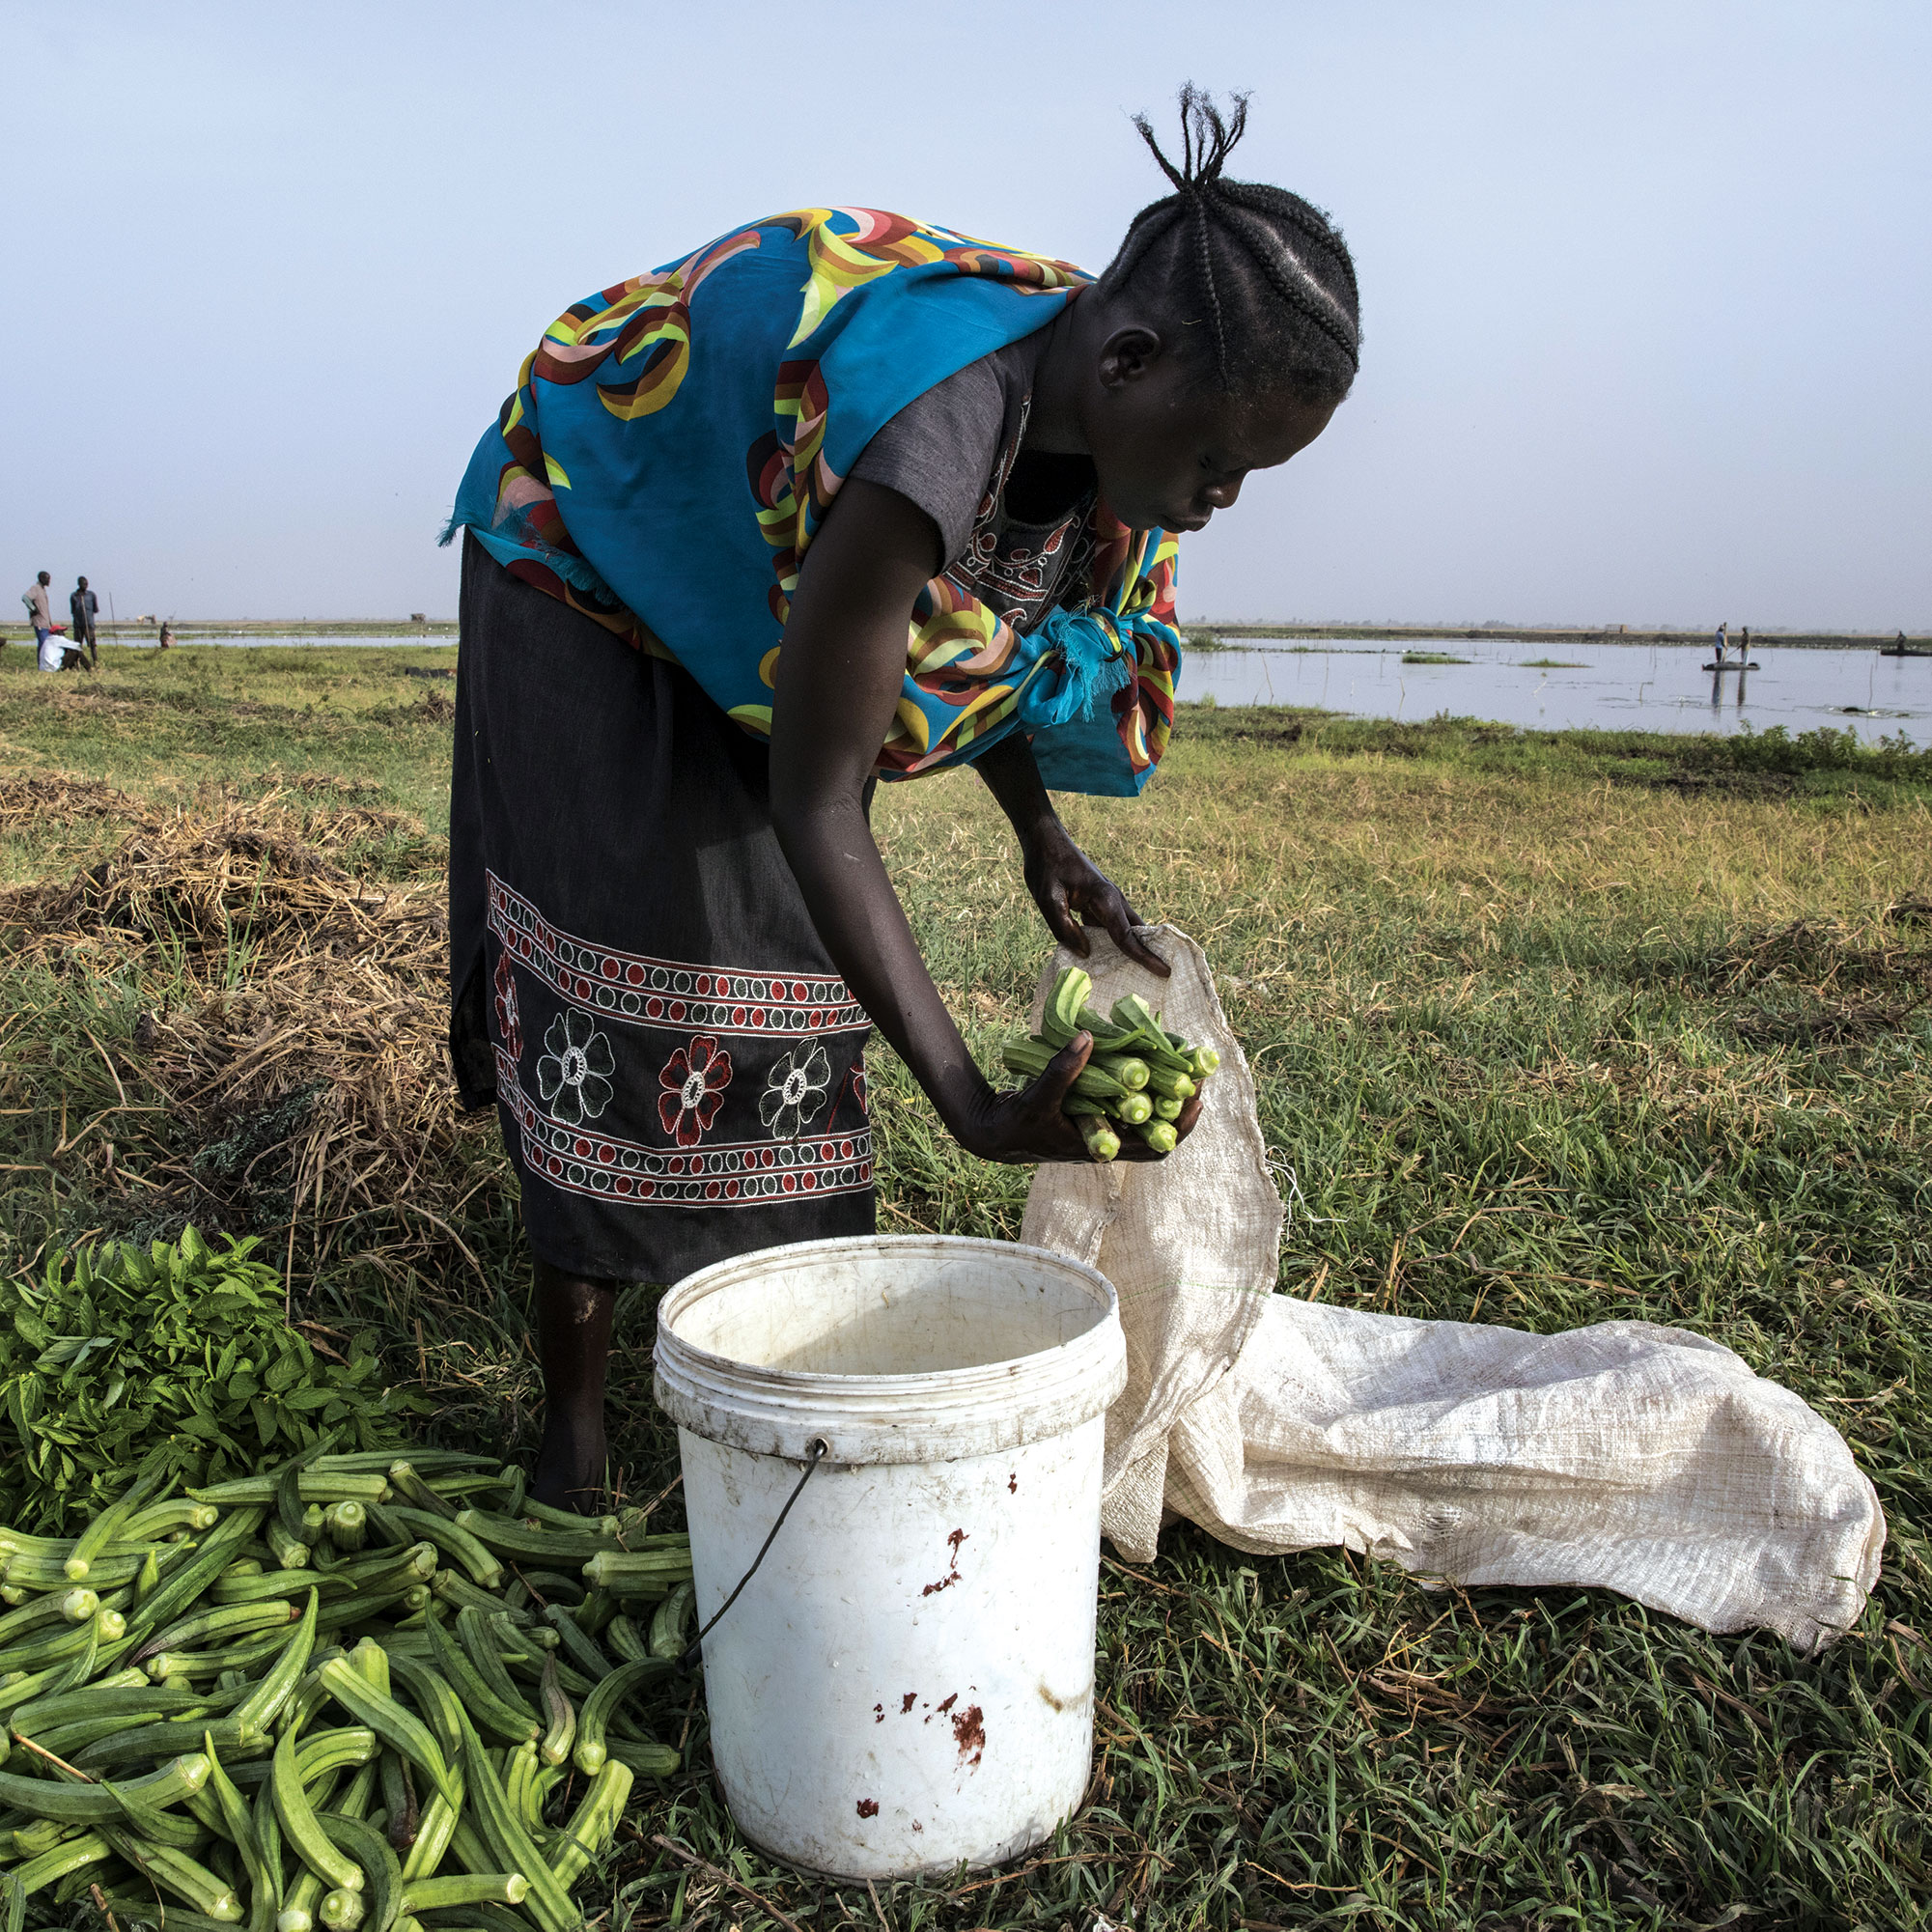 Akon Garang, 27, washes vegetables from her garden in South Sudan where WFP programs involve the community in planning and creating crop farms, vegetable gardens, and access roads.